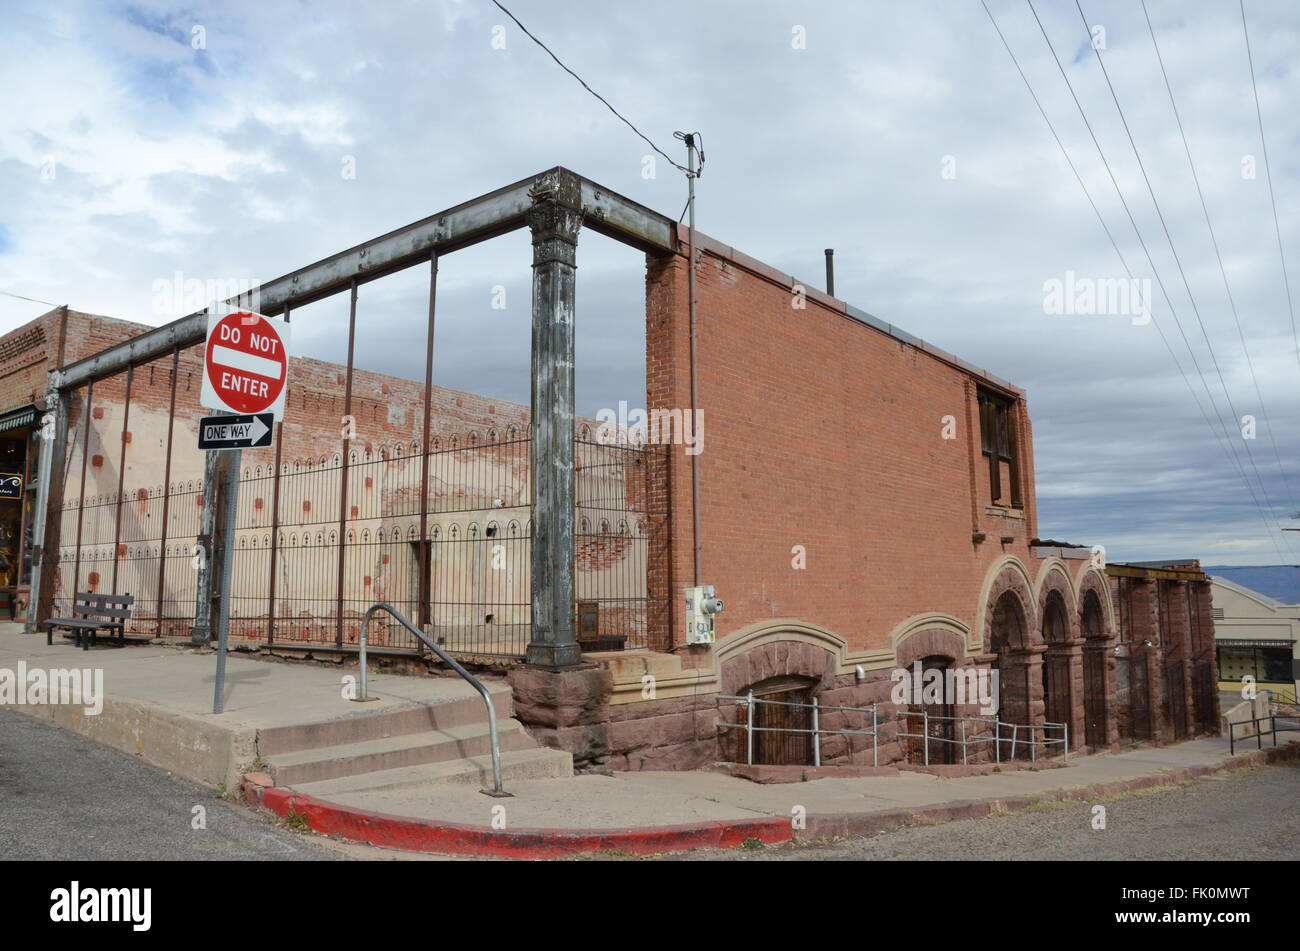 bartlett hotel jerome ghost town arizona abandoned - Stock Image